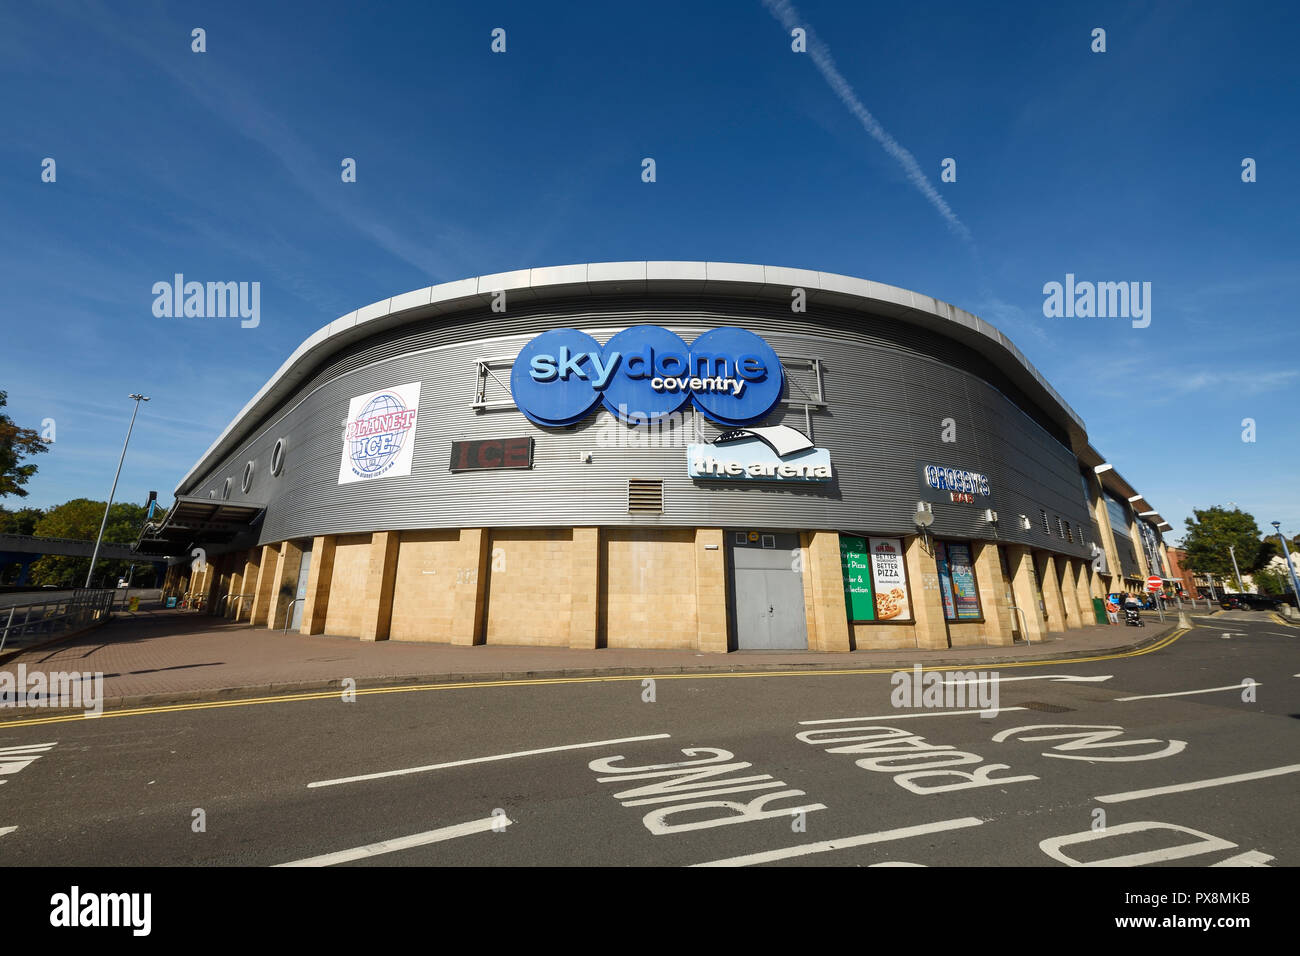 Exterior of Skydome Coventry on Croft Road in Coventry city centre UK - Stock Image